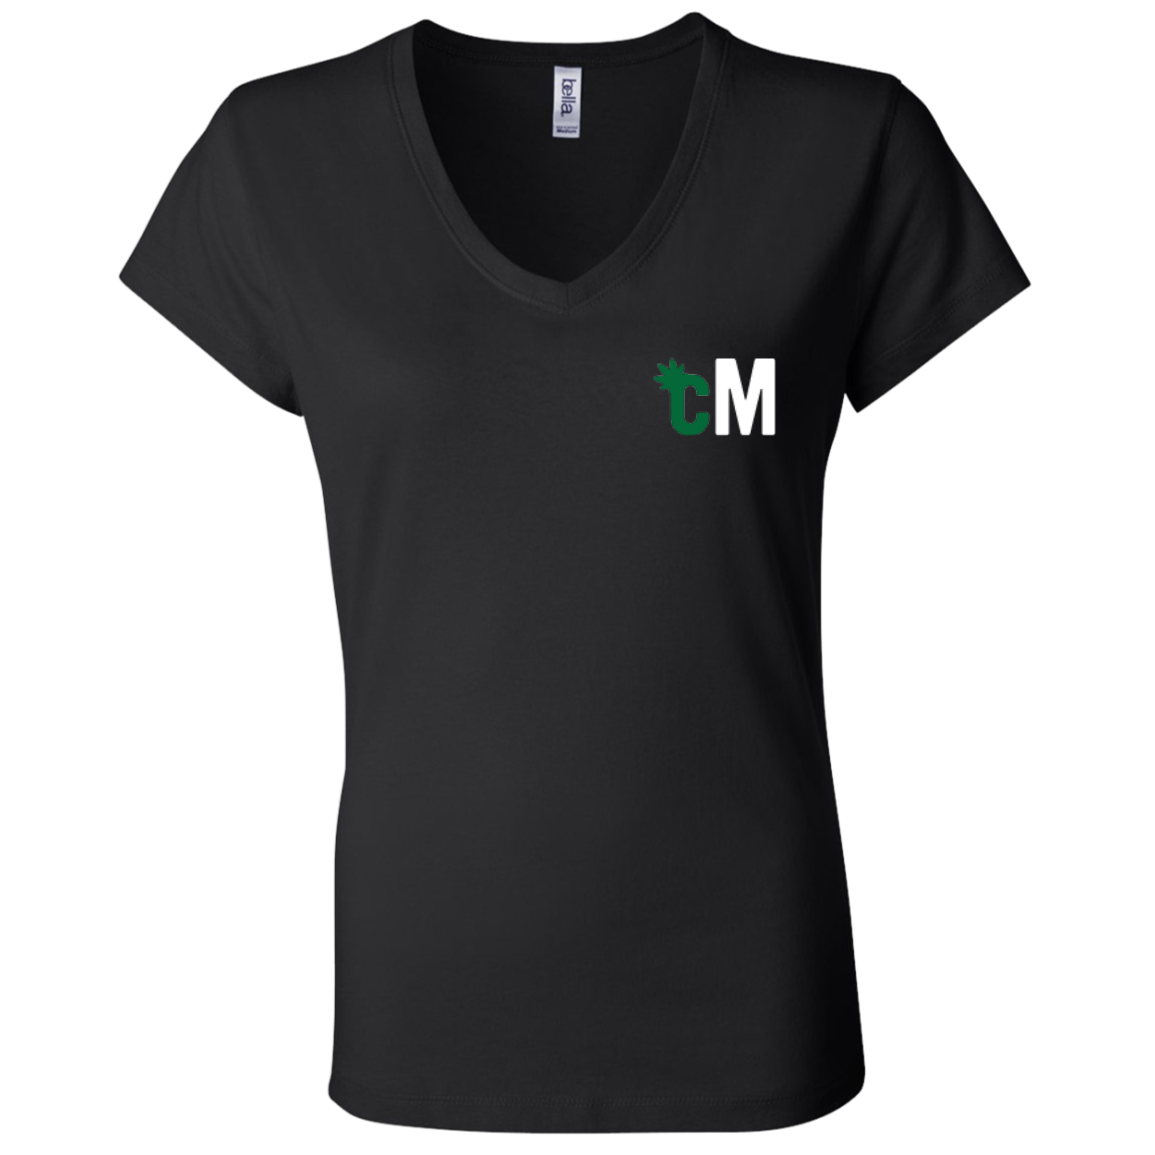 b6005-bella-canvas-ladies-jersey-v-neck-t-shirt_image